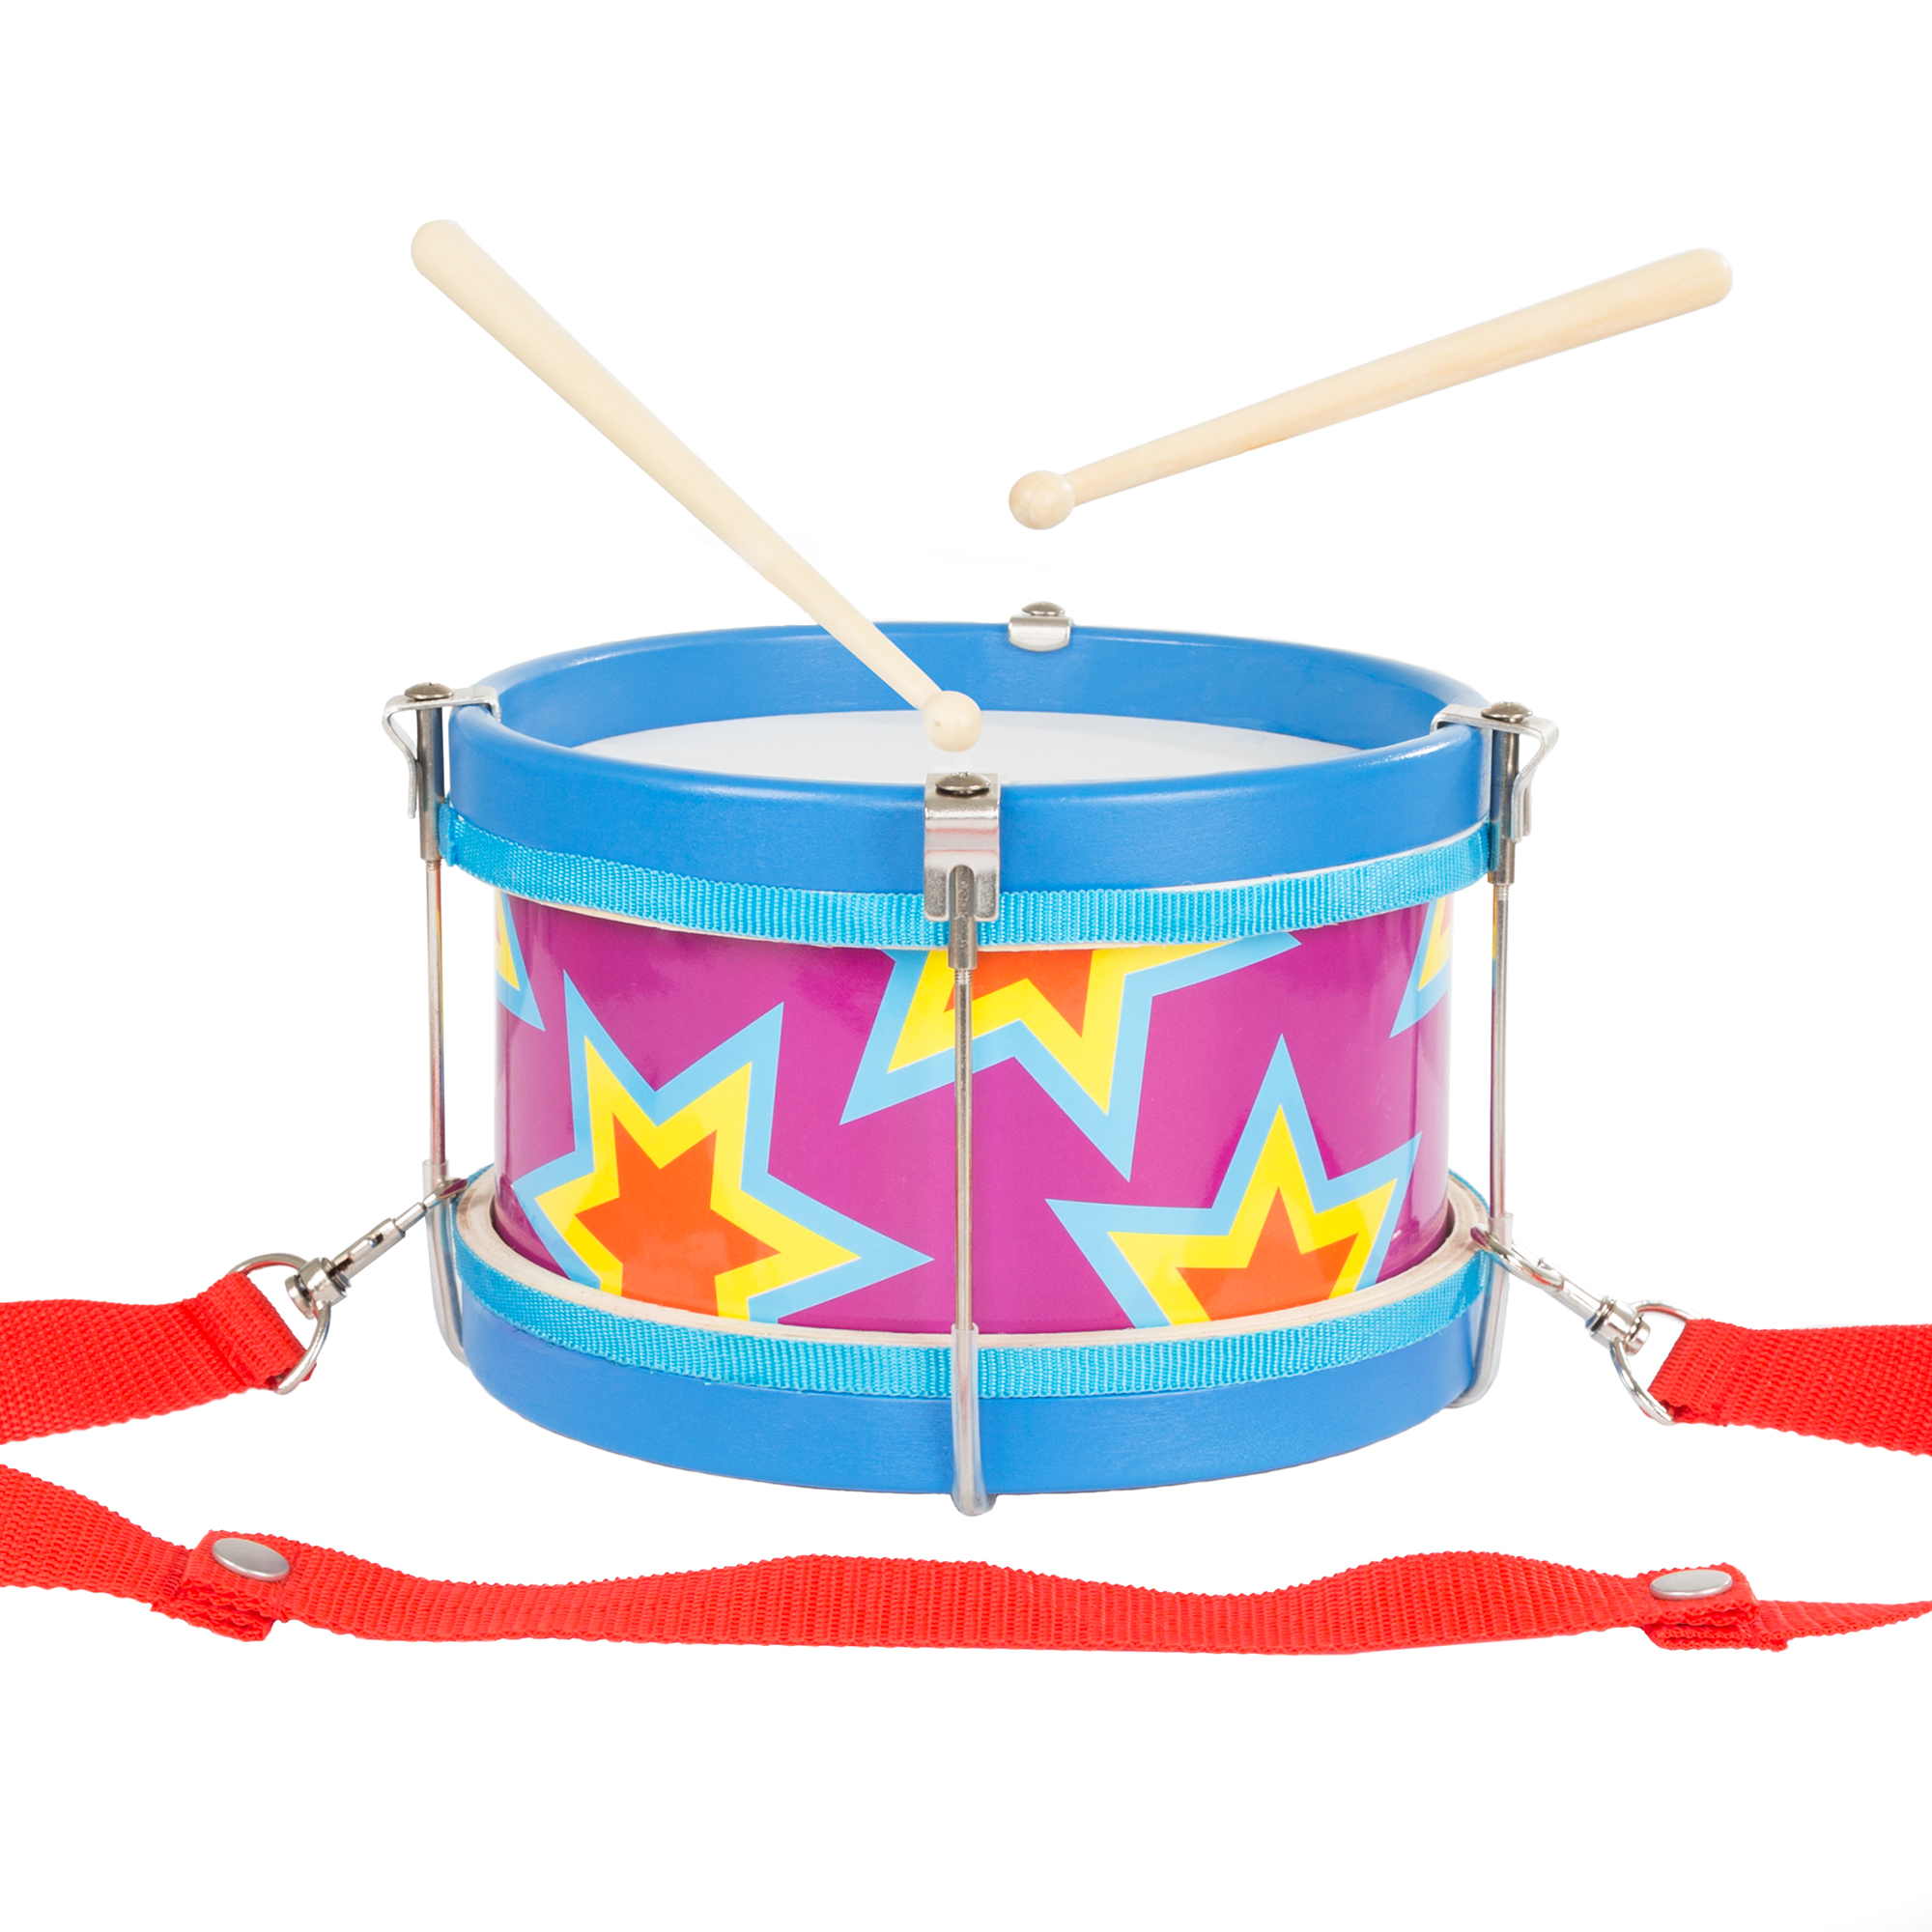 Children's Toy Snare Marching Drum, Double-Sided with Adjustable Neck Strap and Two Wood Drum Sticks- Music Fun for Kids, Toddlers by Hey! Play!